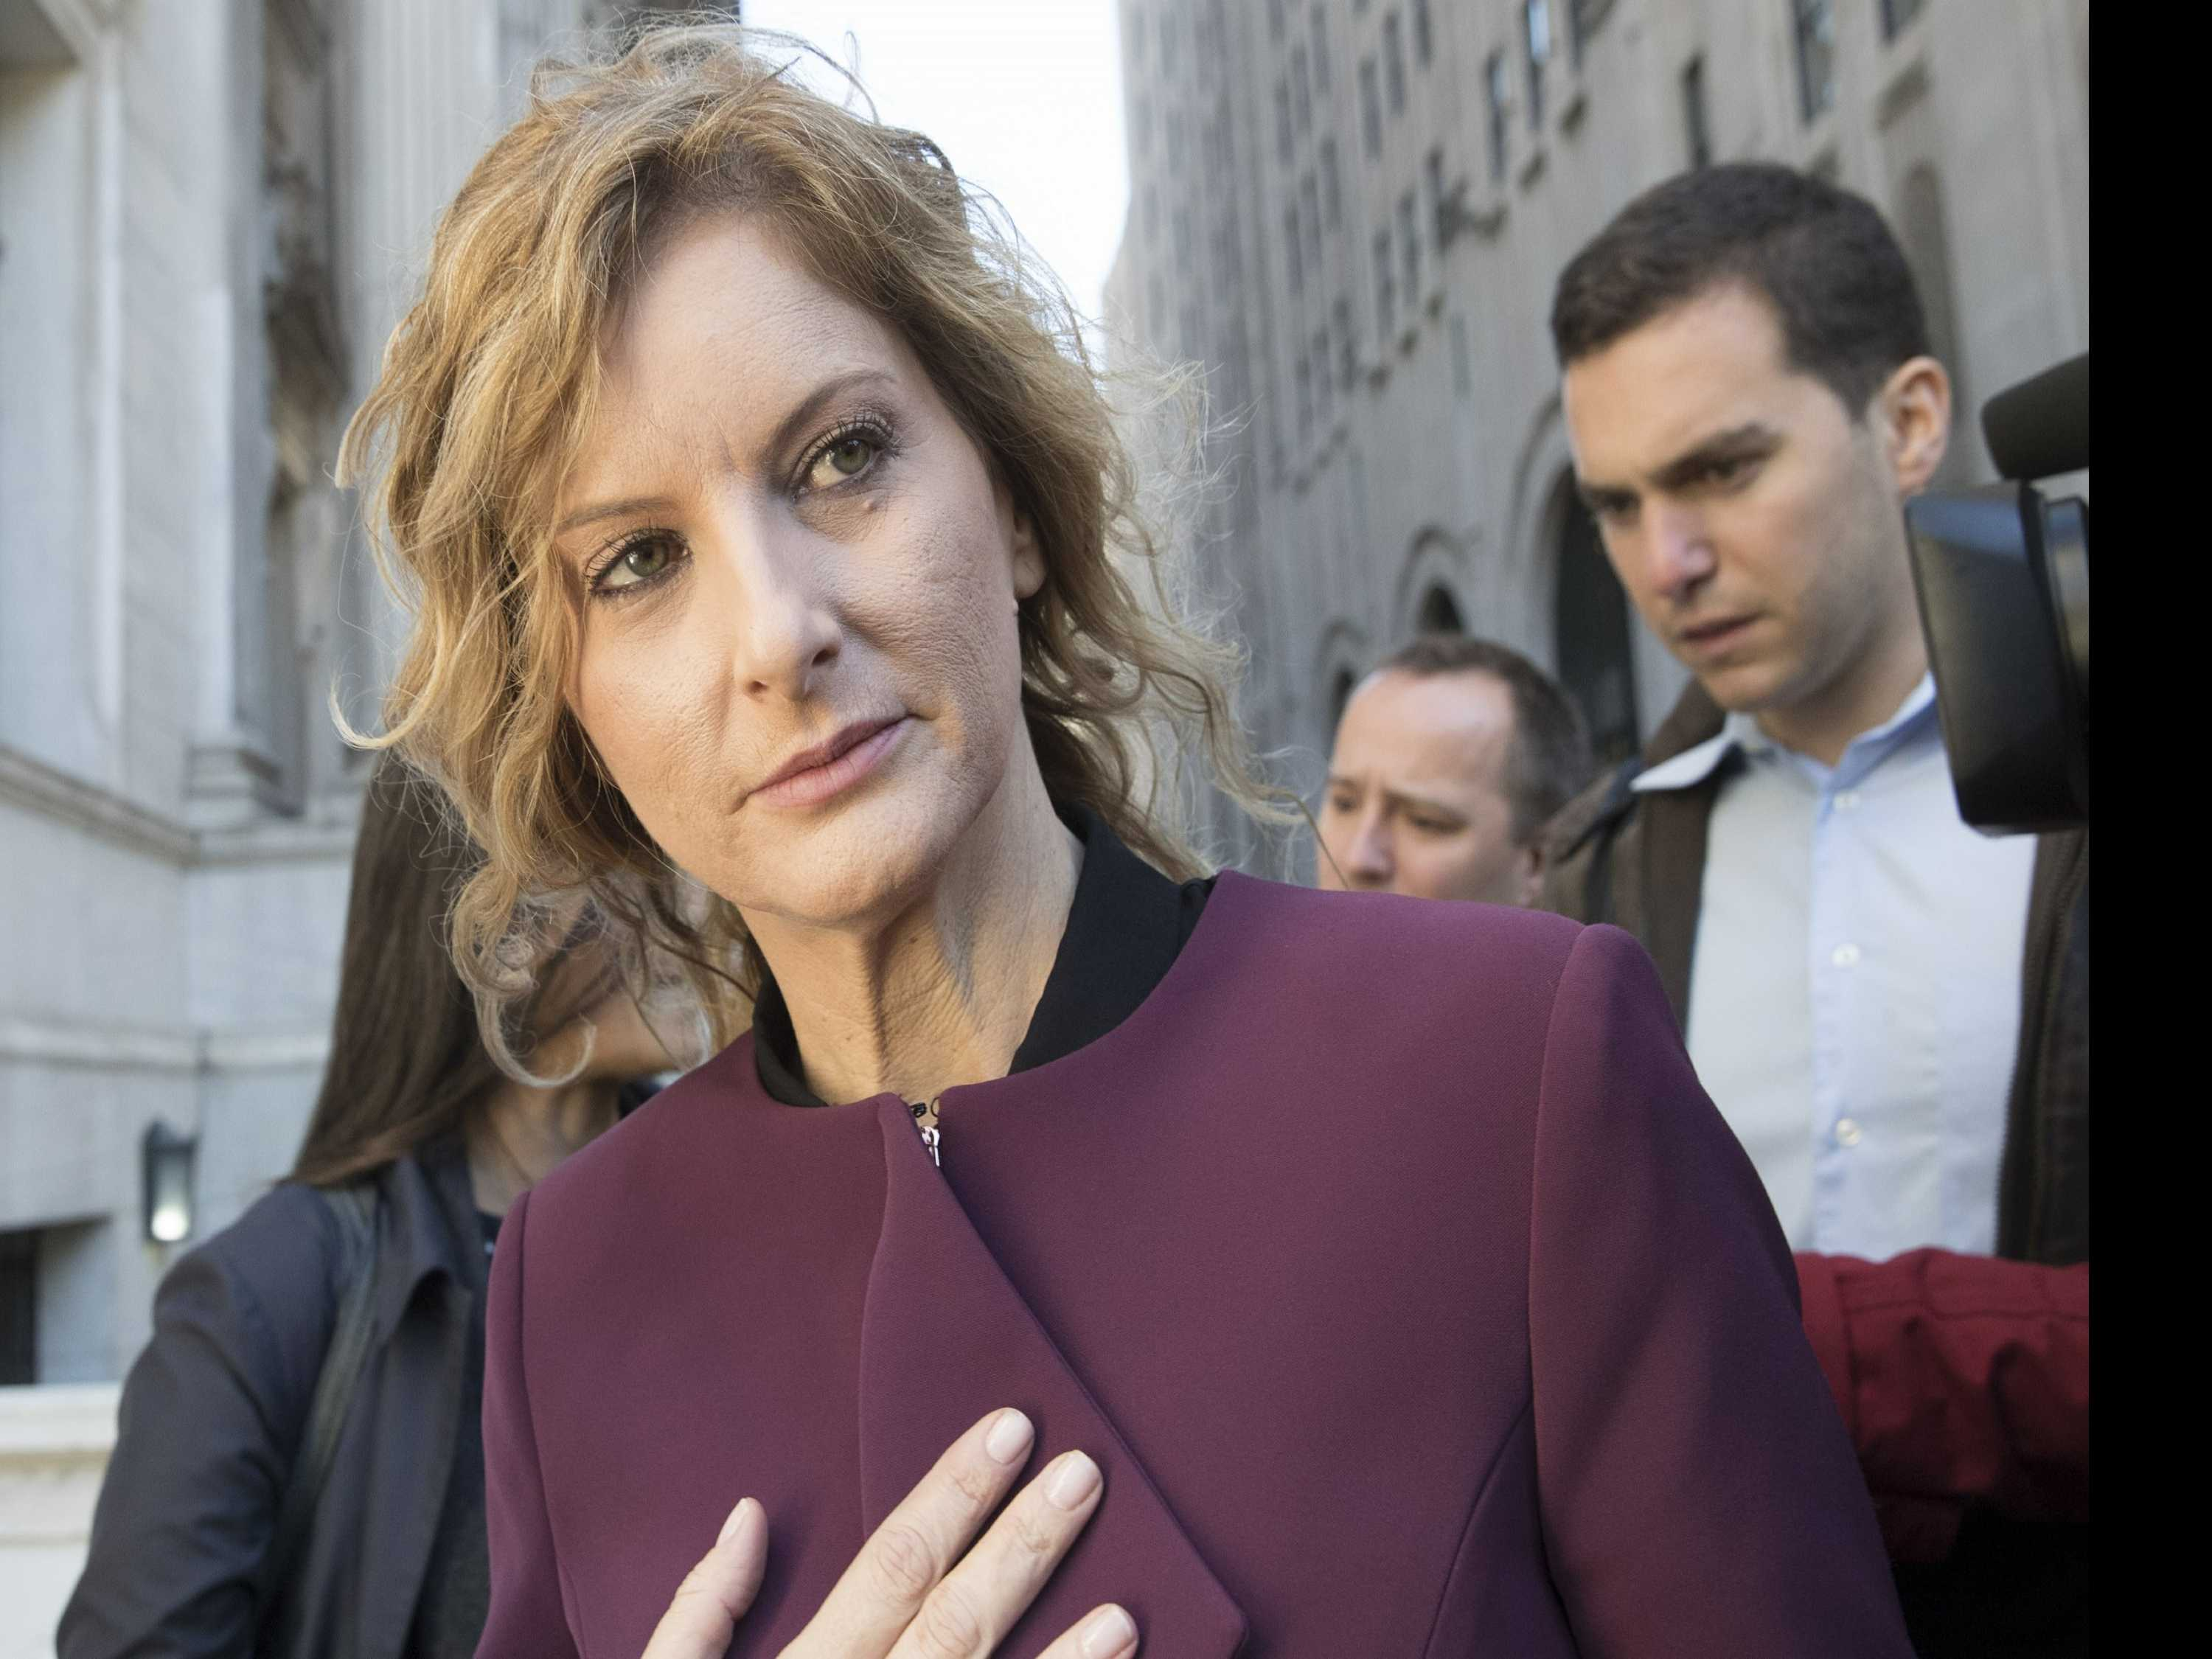 'Apprentice' Contestant's Trump Defamation Suit Can Proceed